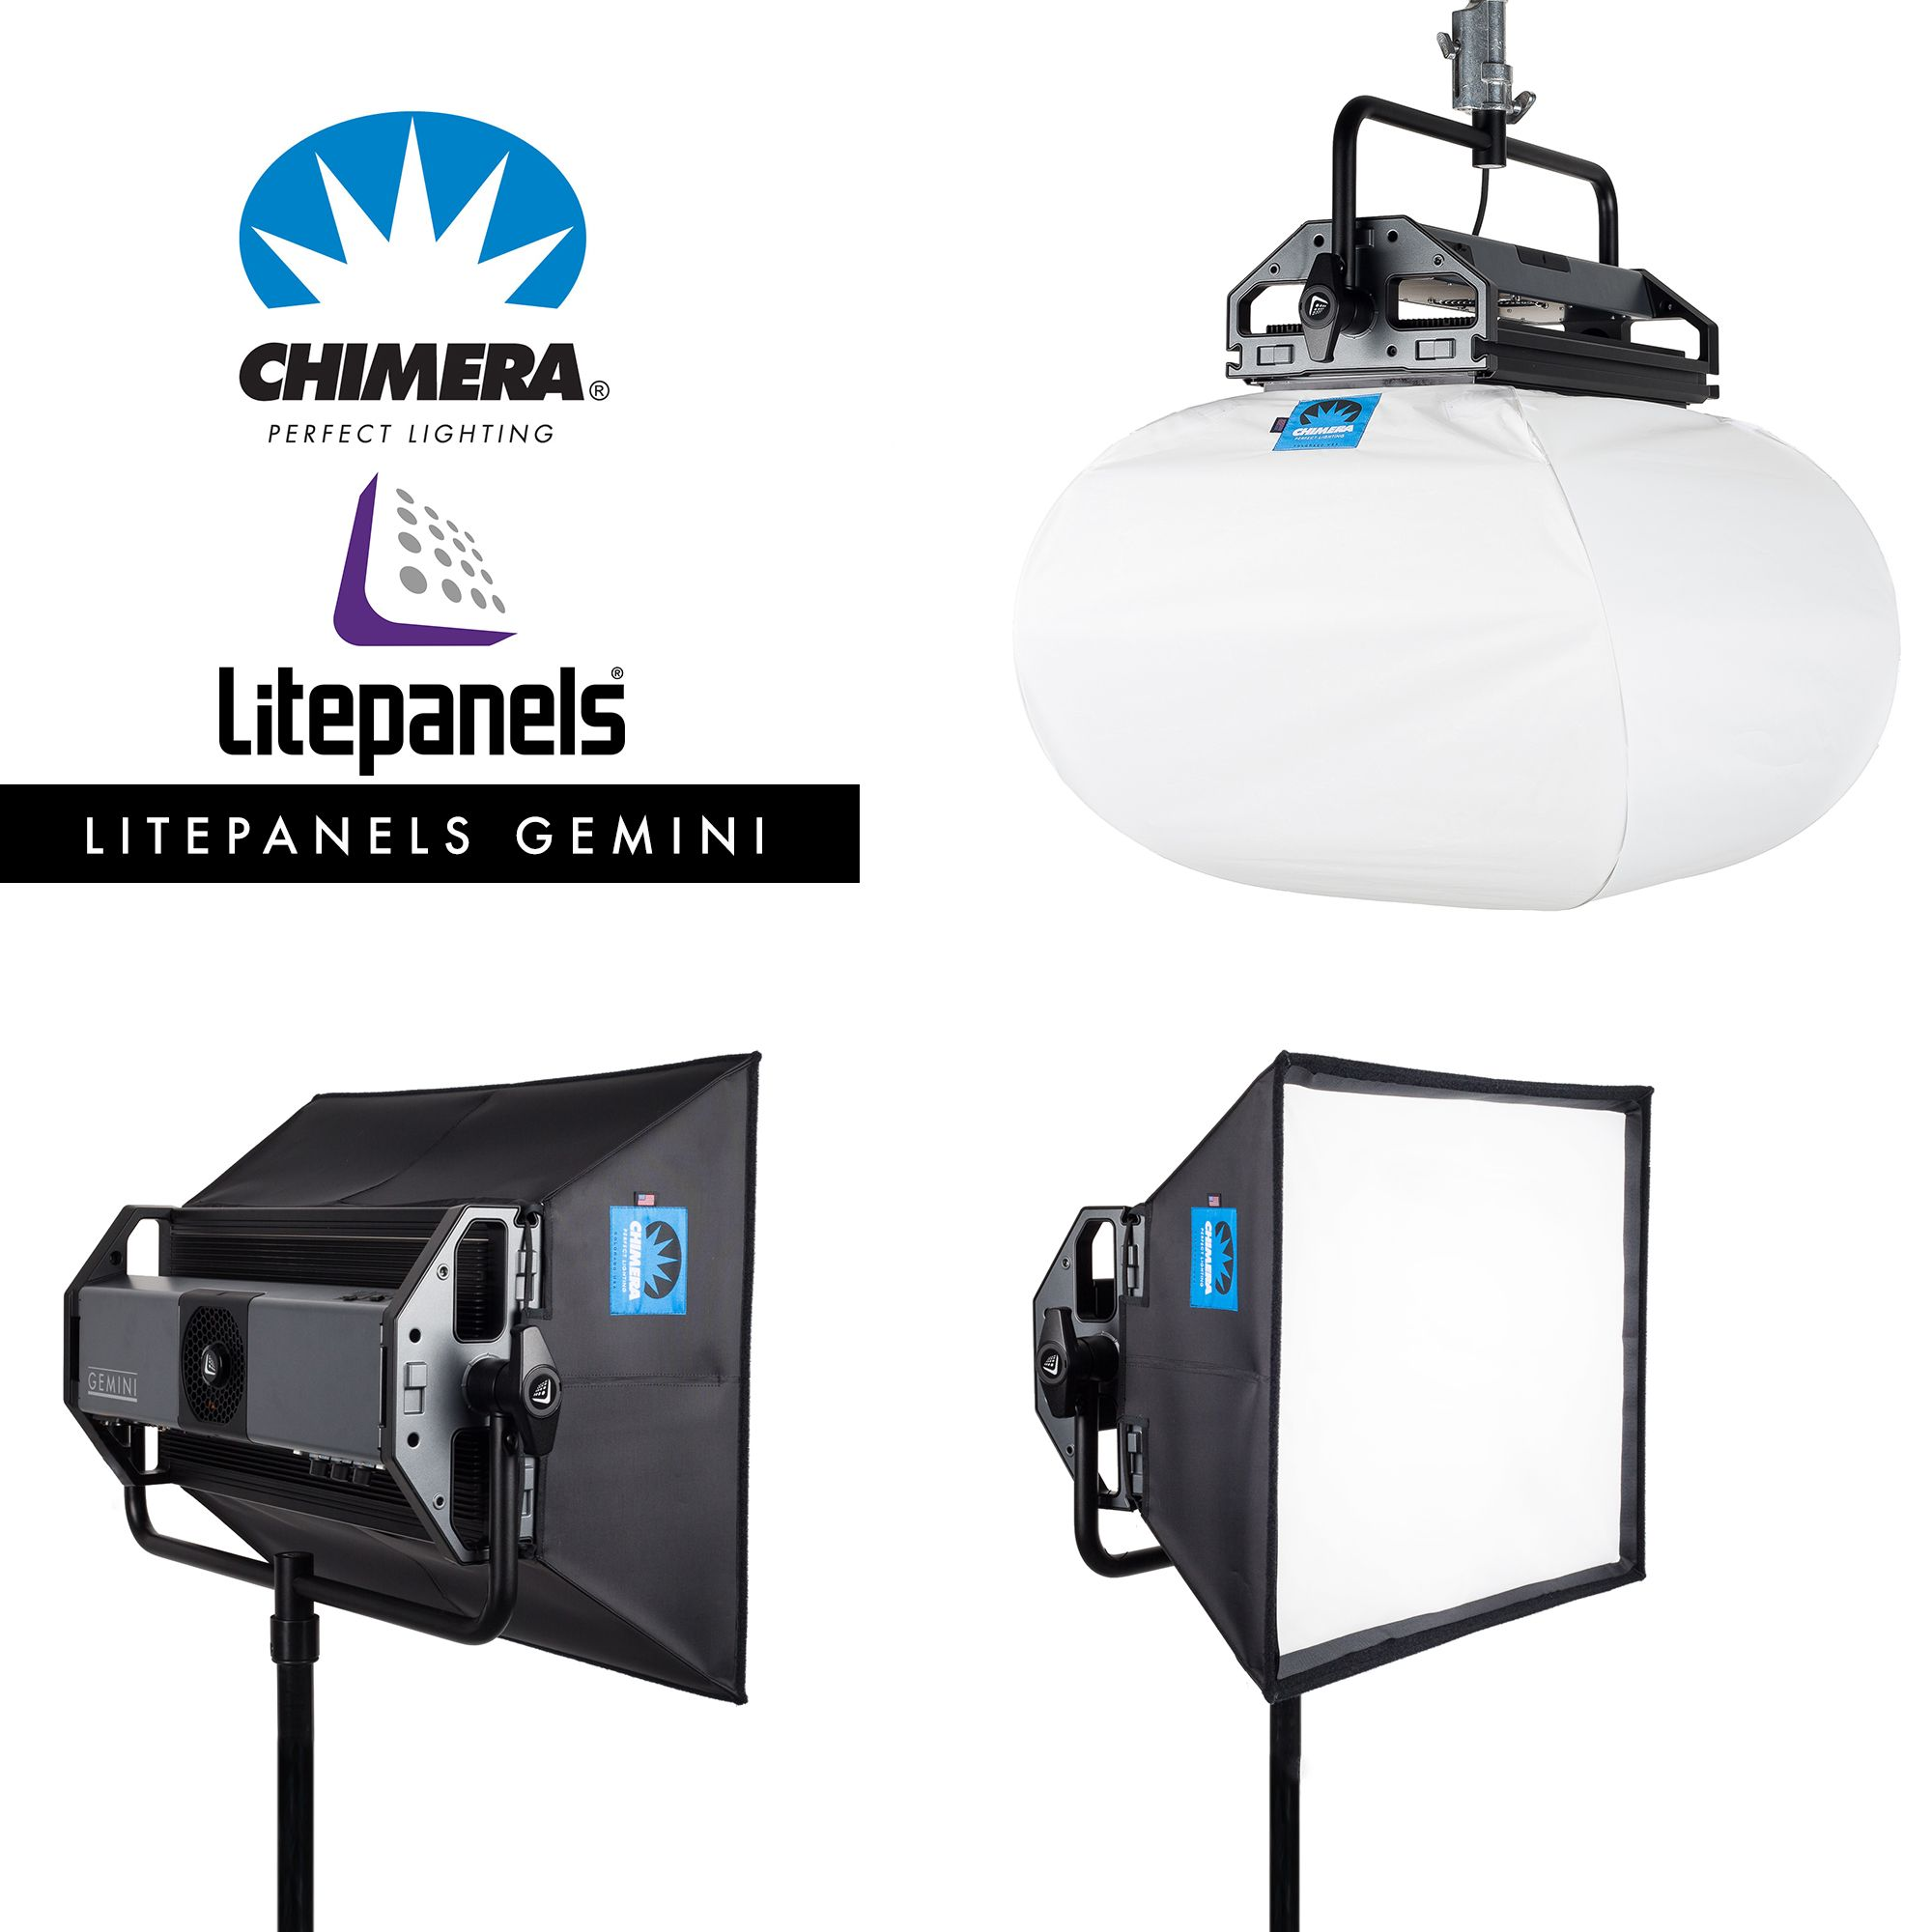 Chimera Lighting Will Introduce A Frameless Lightbank And Lantern For The Litepanels Gemini At